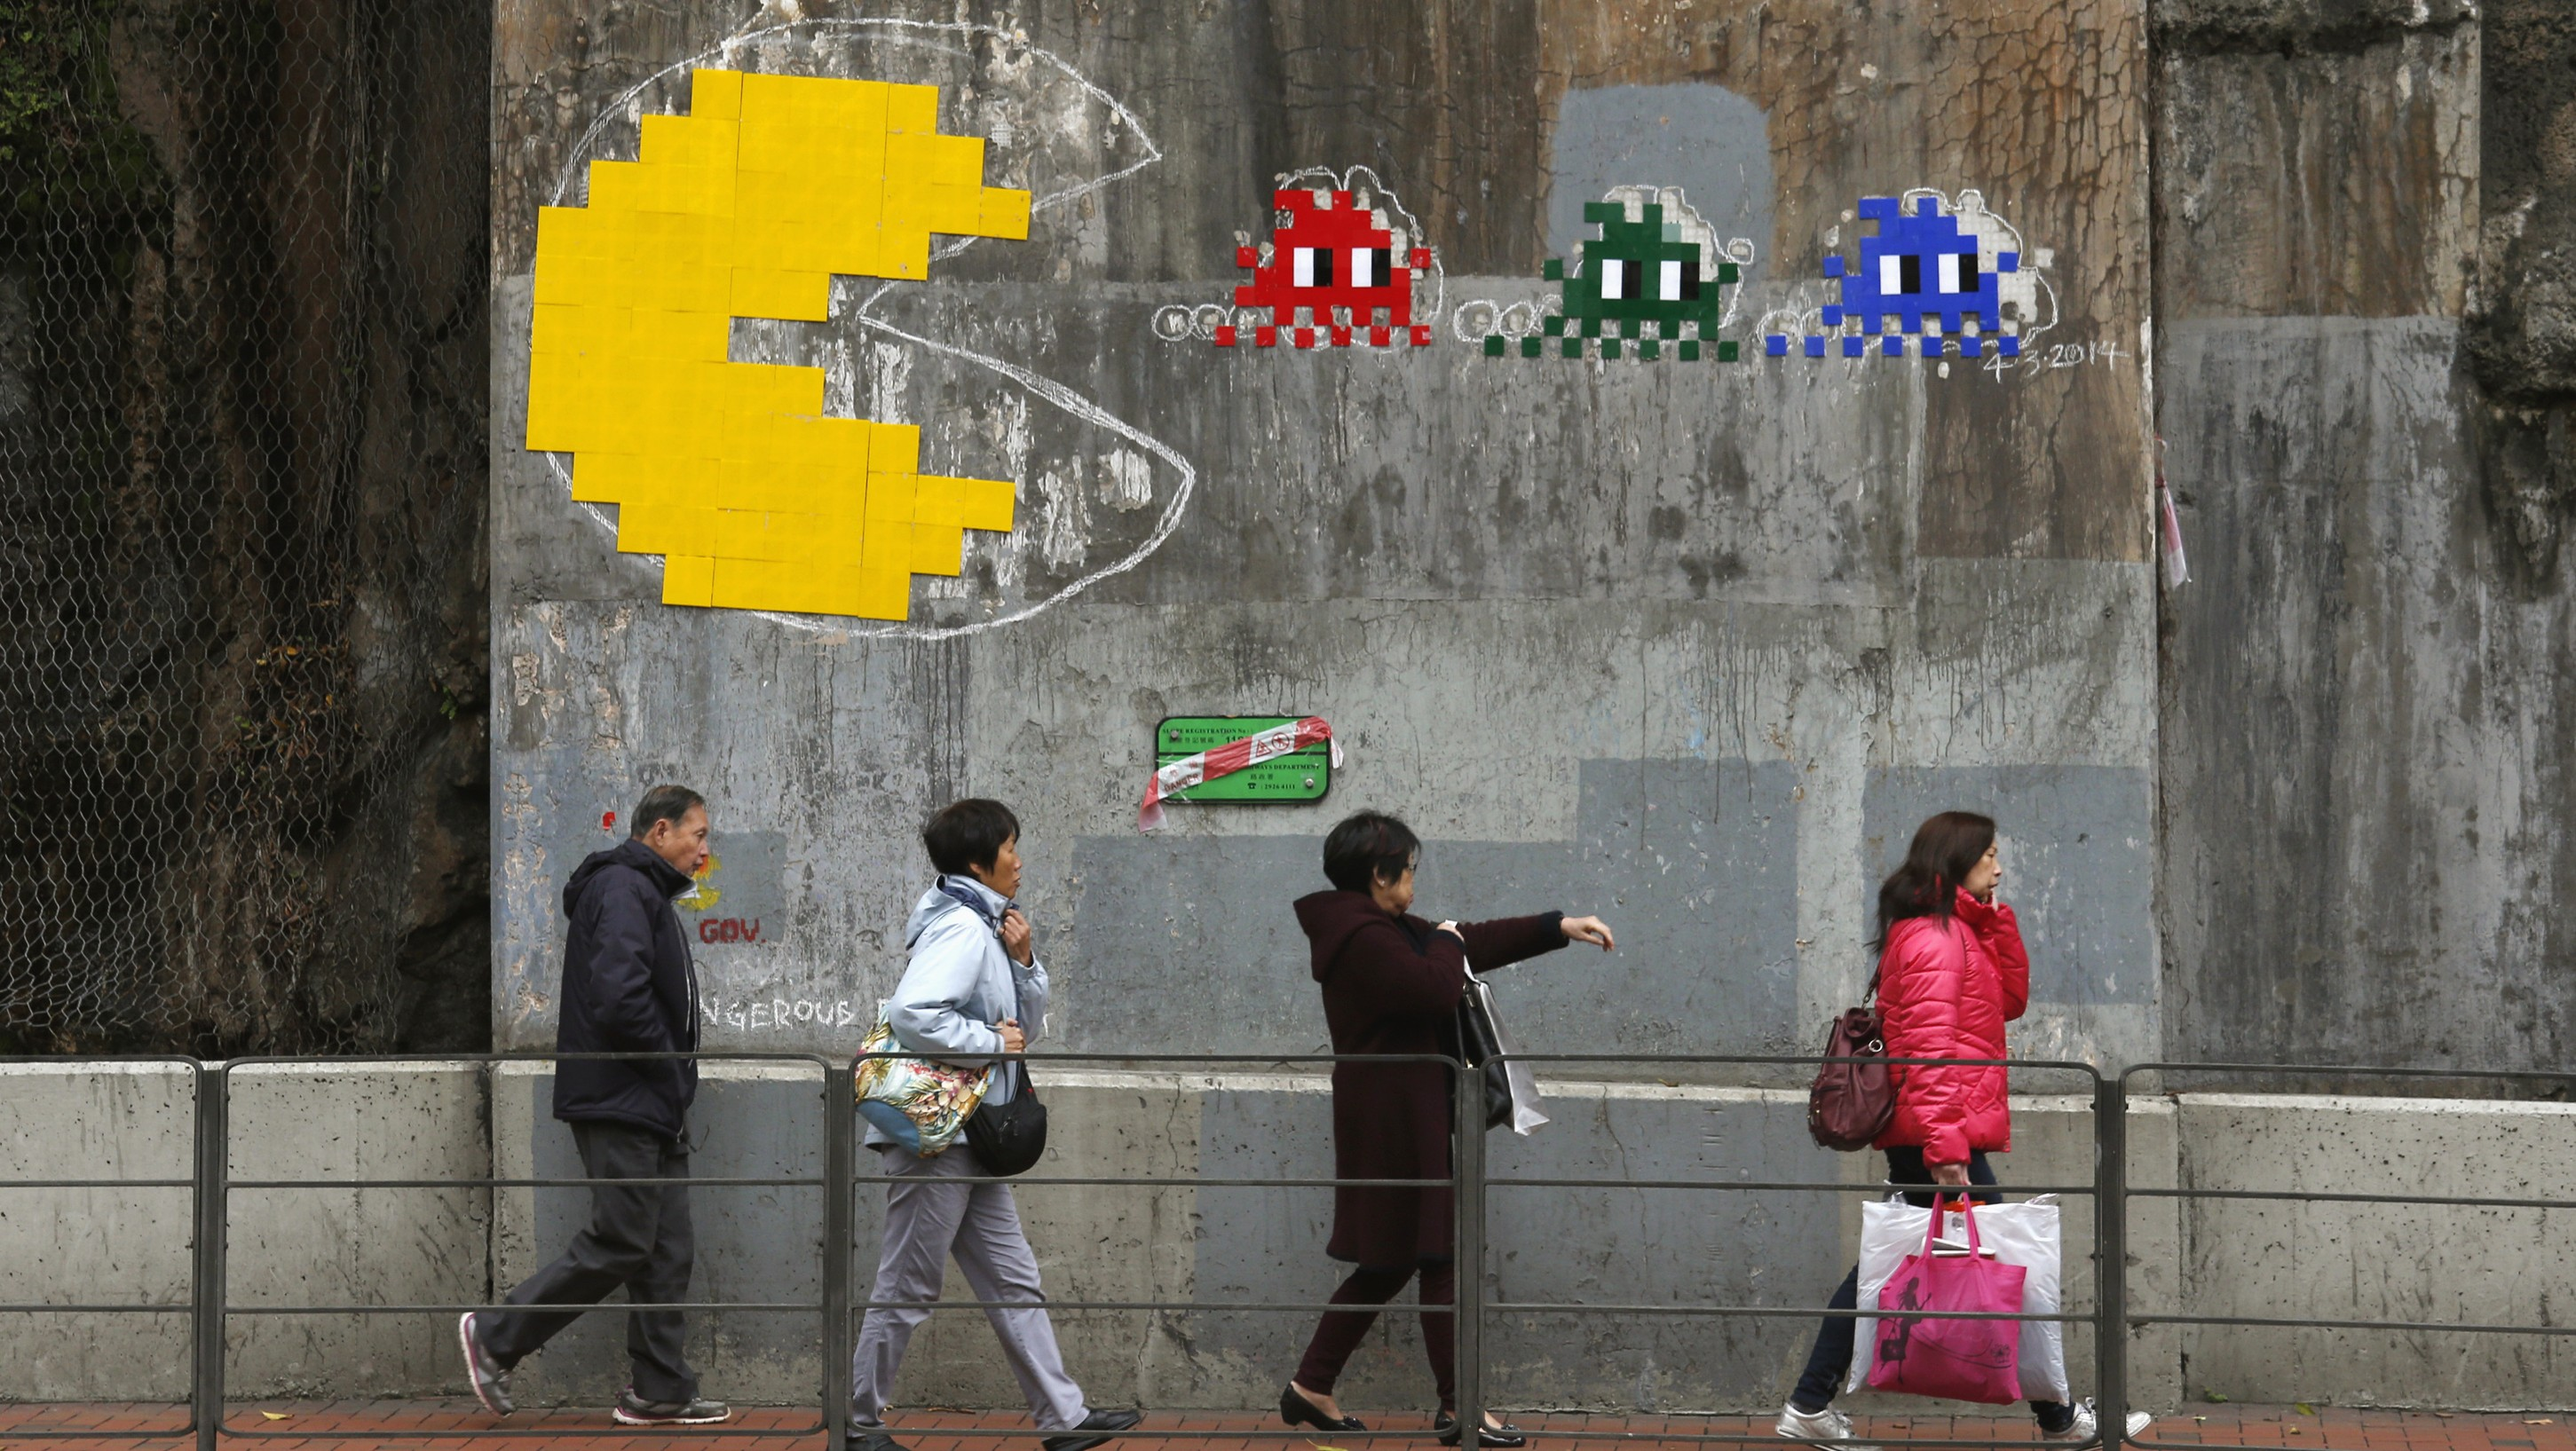 """People walk past a copy of an Pac-Man art piece by French urban artist """"Space Invader"""", in Hong Kong March 7, 2014. The original piece, which was in the same place, was removed by the Hong Kong government for """"safety"""" reasons in February 13, according to local media.   REUTERS/Bobby Yip   (CHINA - Tags: ENTERTAINMENT SOCIETY TPX IMAGES OF THE DAY) - RTR3G5AY"""